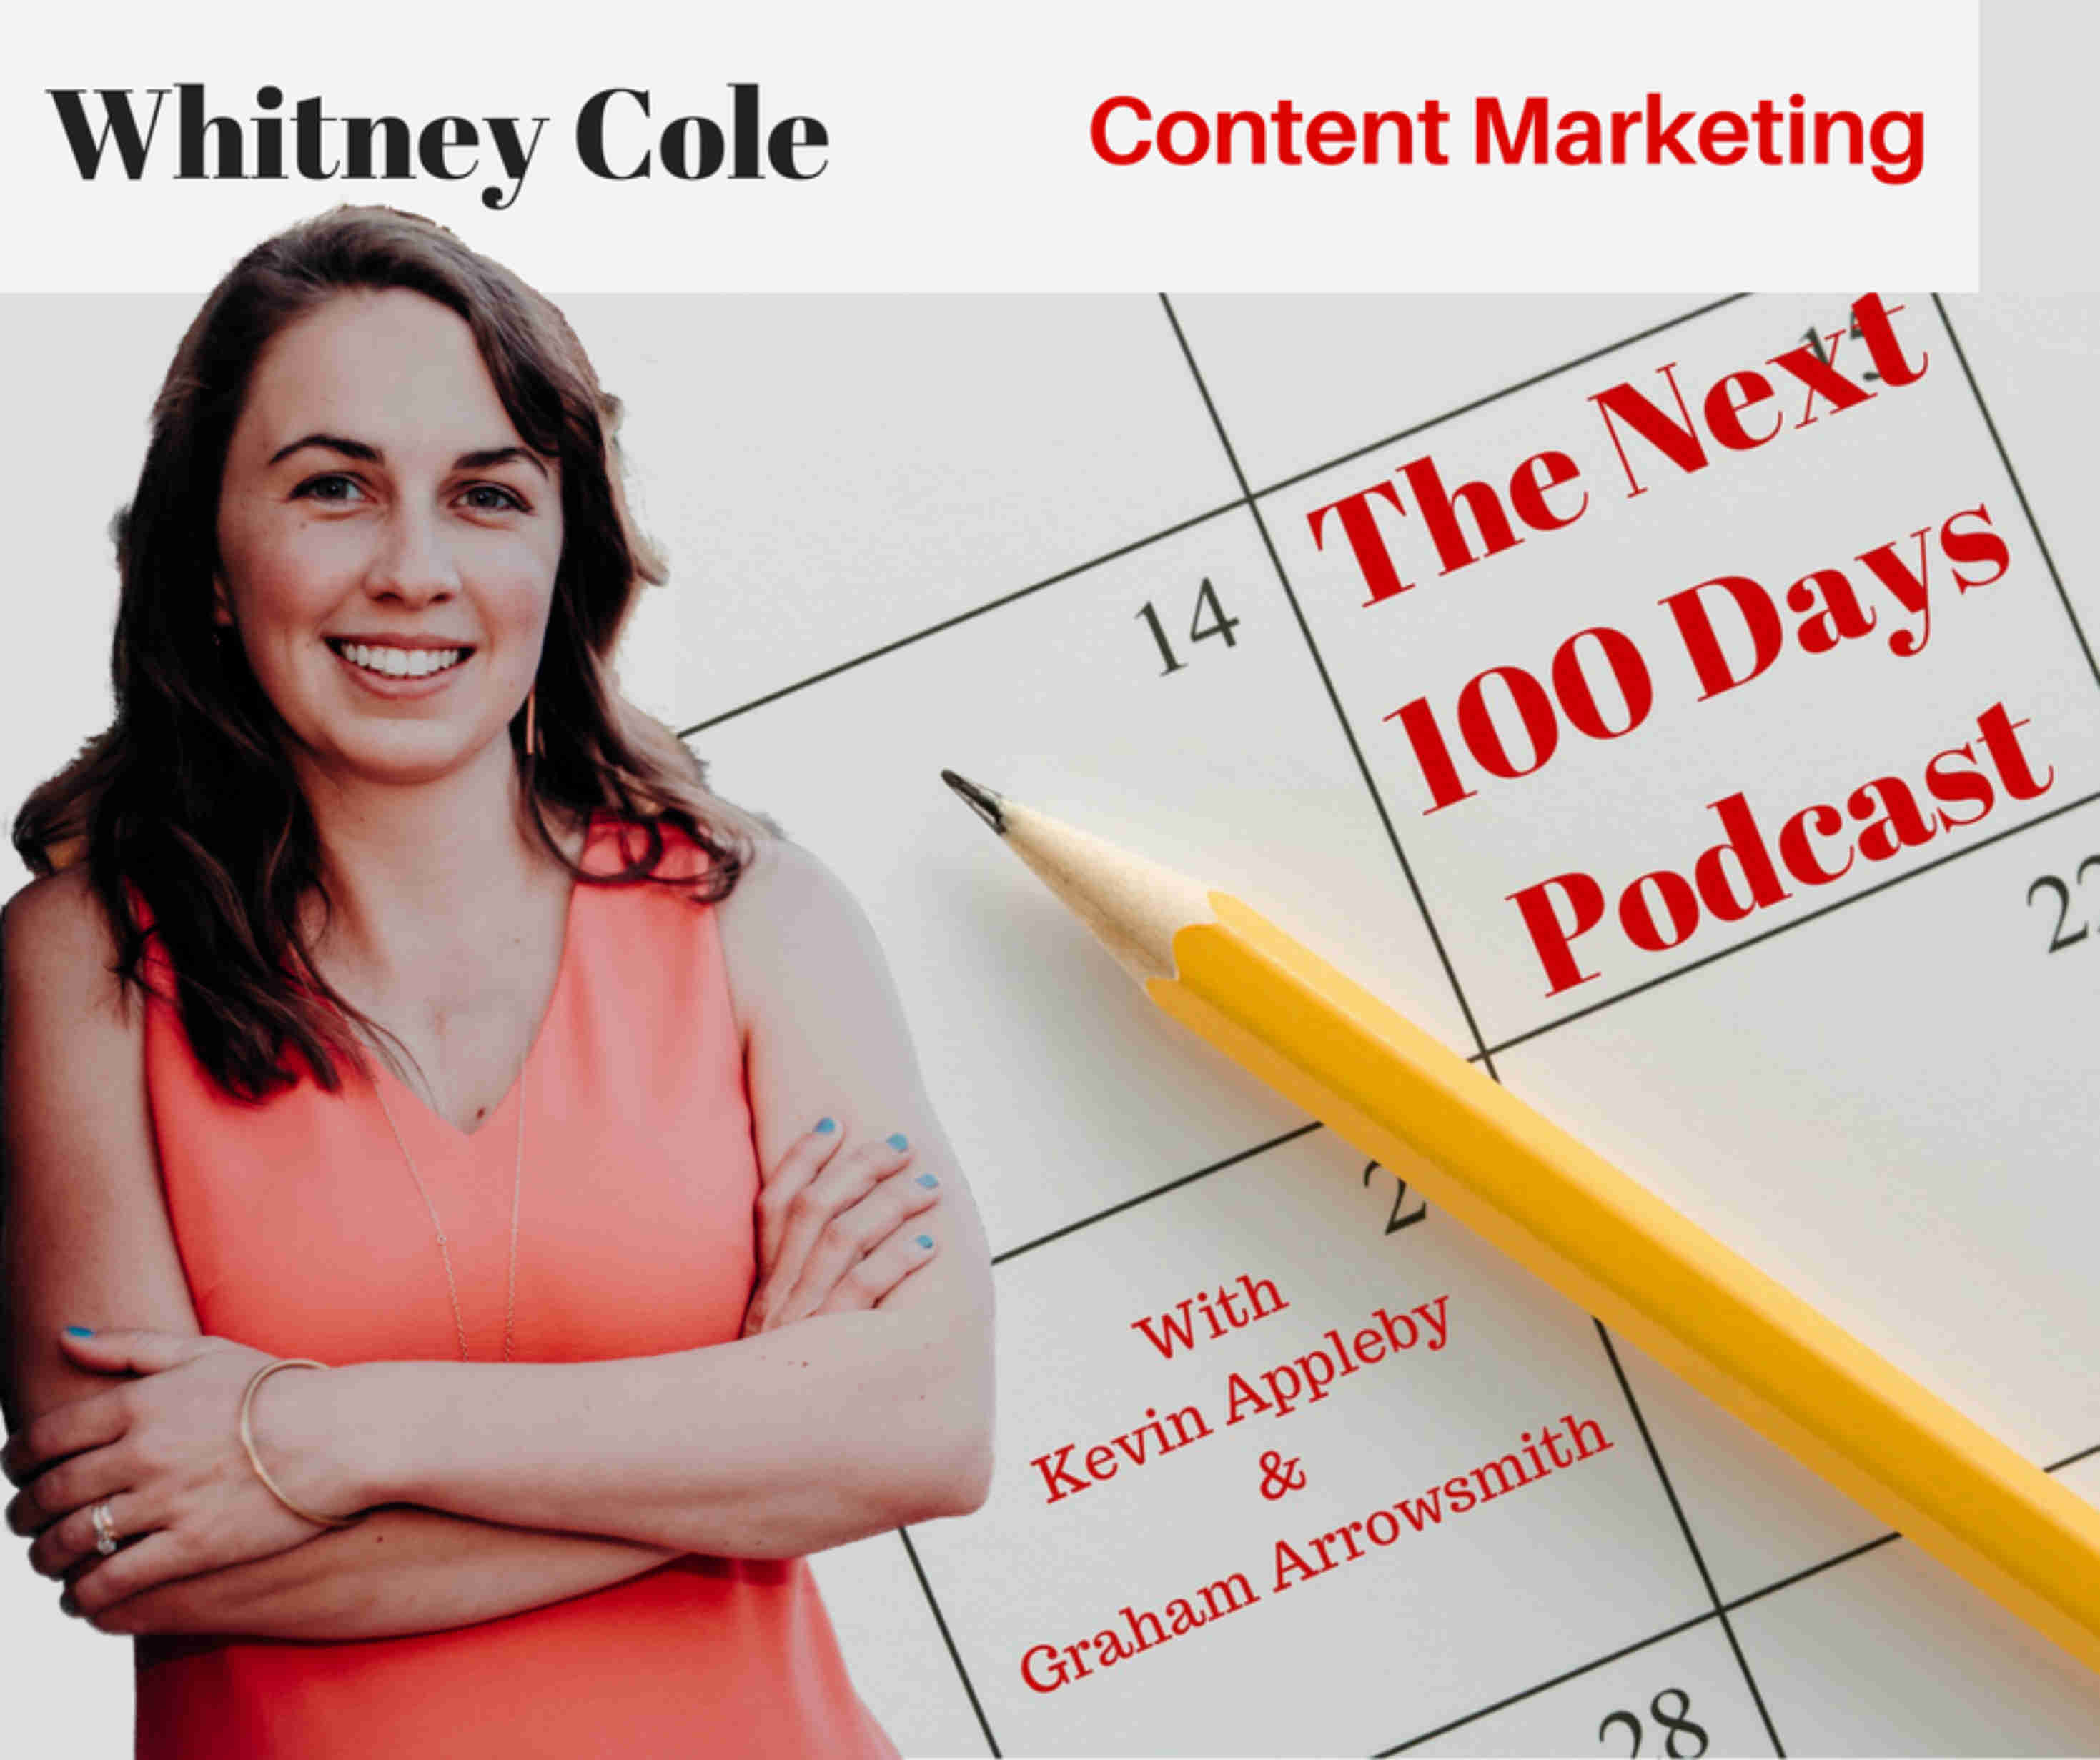 Contact Enhance, Duncan Gledhill, The Next 100 Days Podcast, West Yorkshire Marketing Consultancy, Marketing Services, Direct Mail, Direct Marketing, Lead Generation